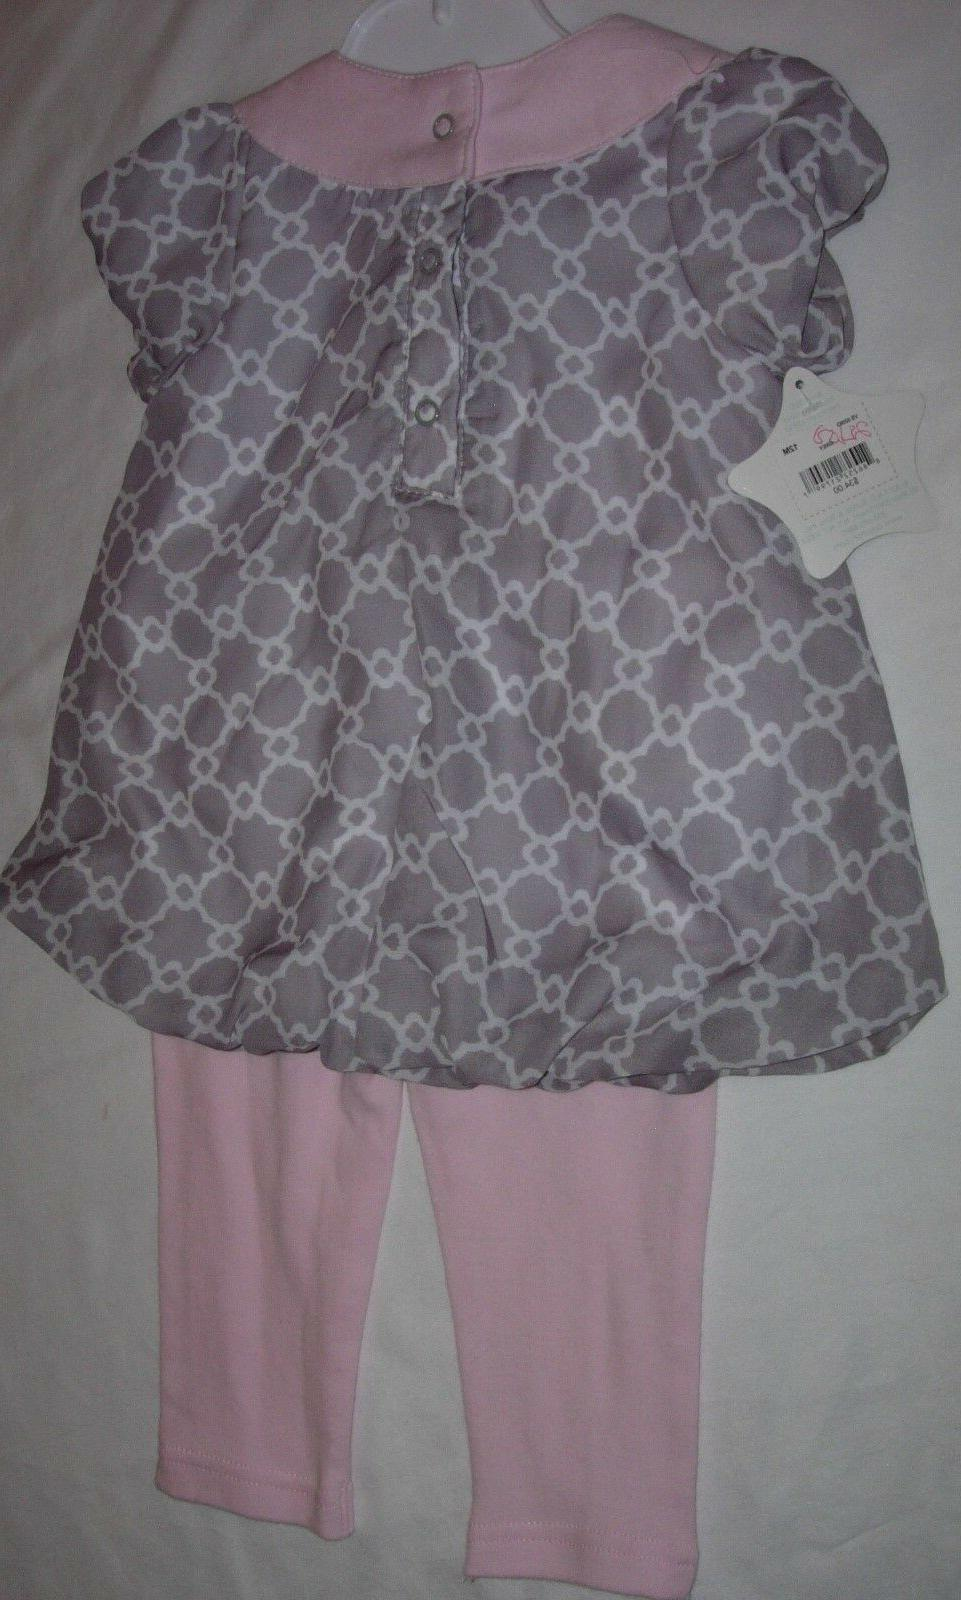 NEW BABY & SIZE 12M NWT